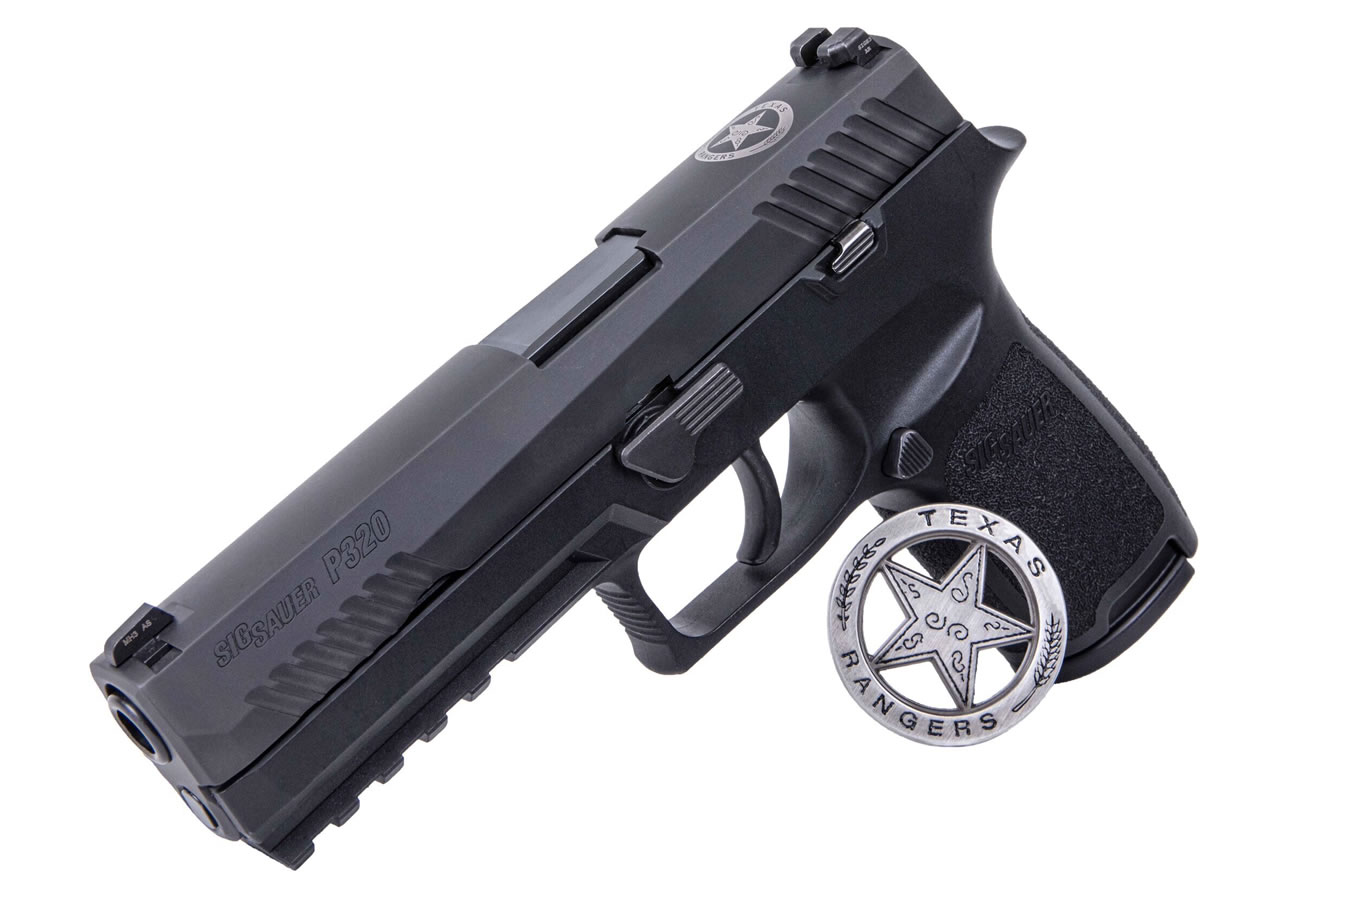 P320 FULL SIZE 9MM TEXAS RANGER EDITION